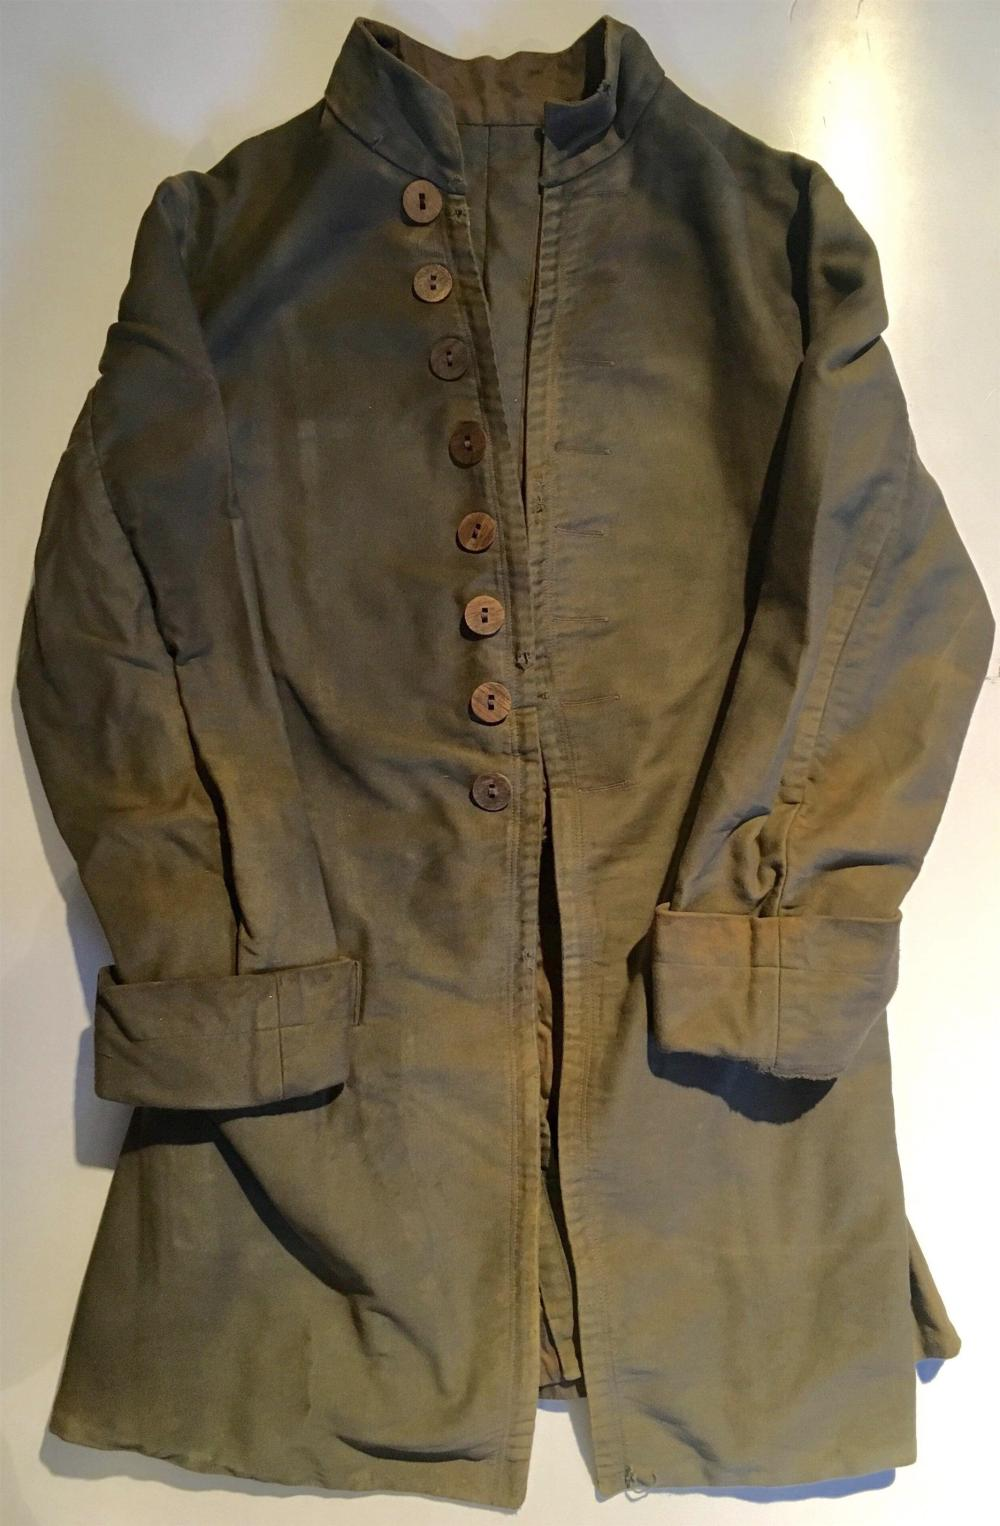 Pirates of the Caribbean: On Stranger Tides (2011) - Pirate Jacket - Lot A